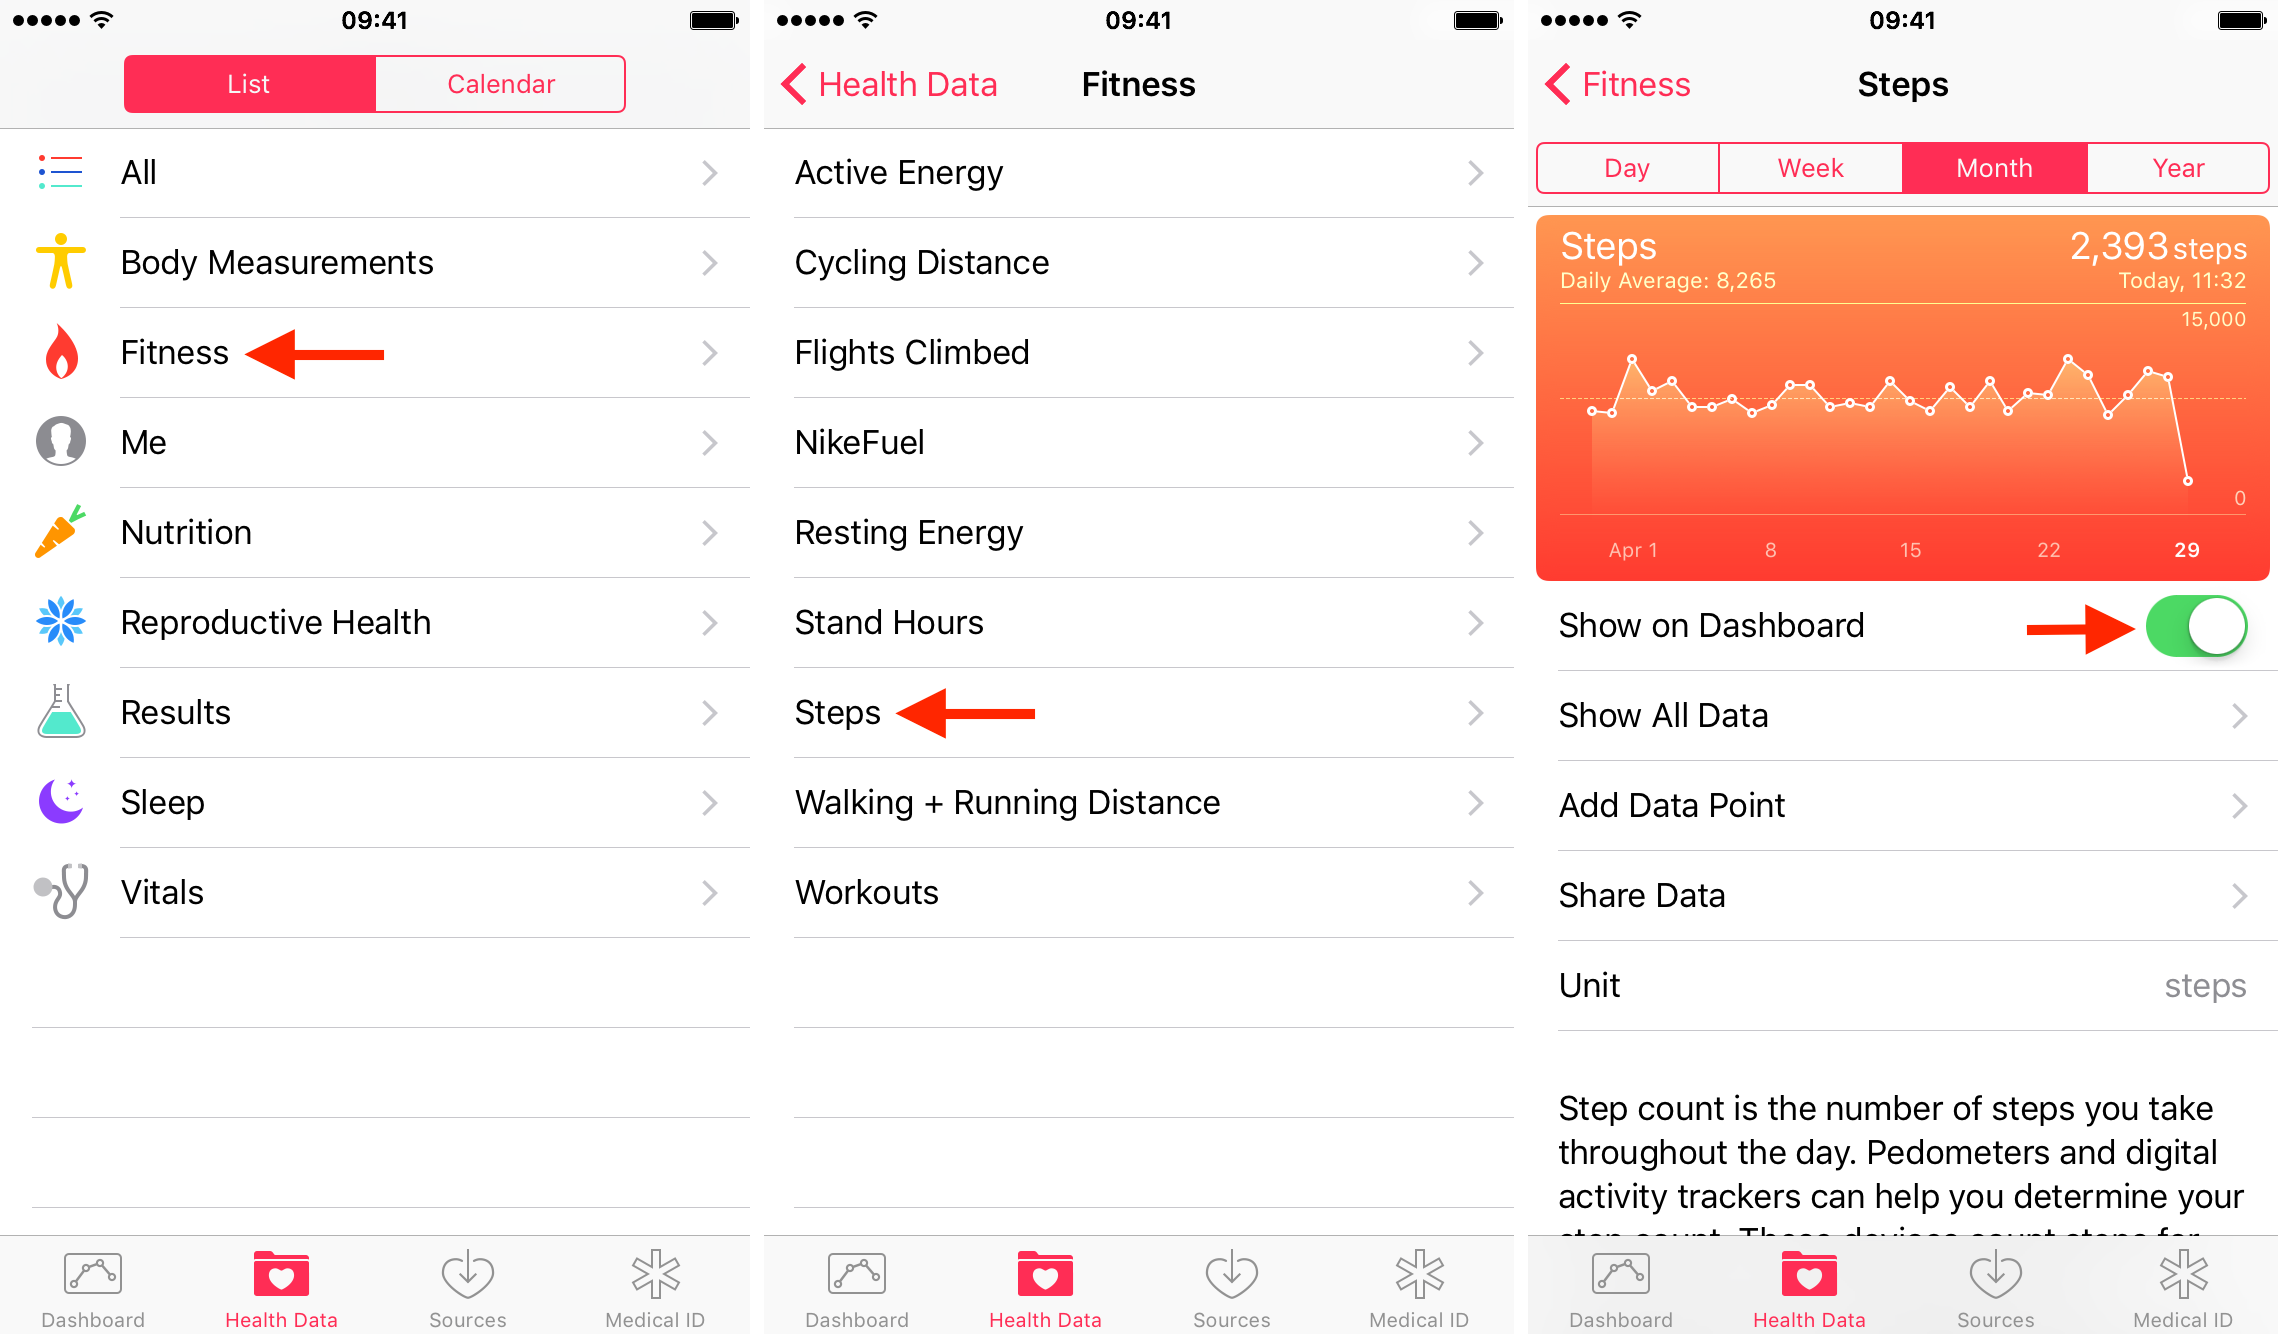 Adding step count to iPhone Health app